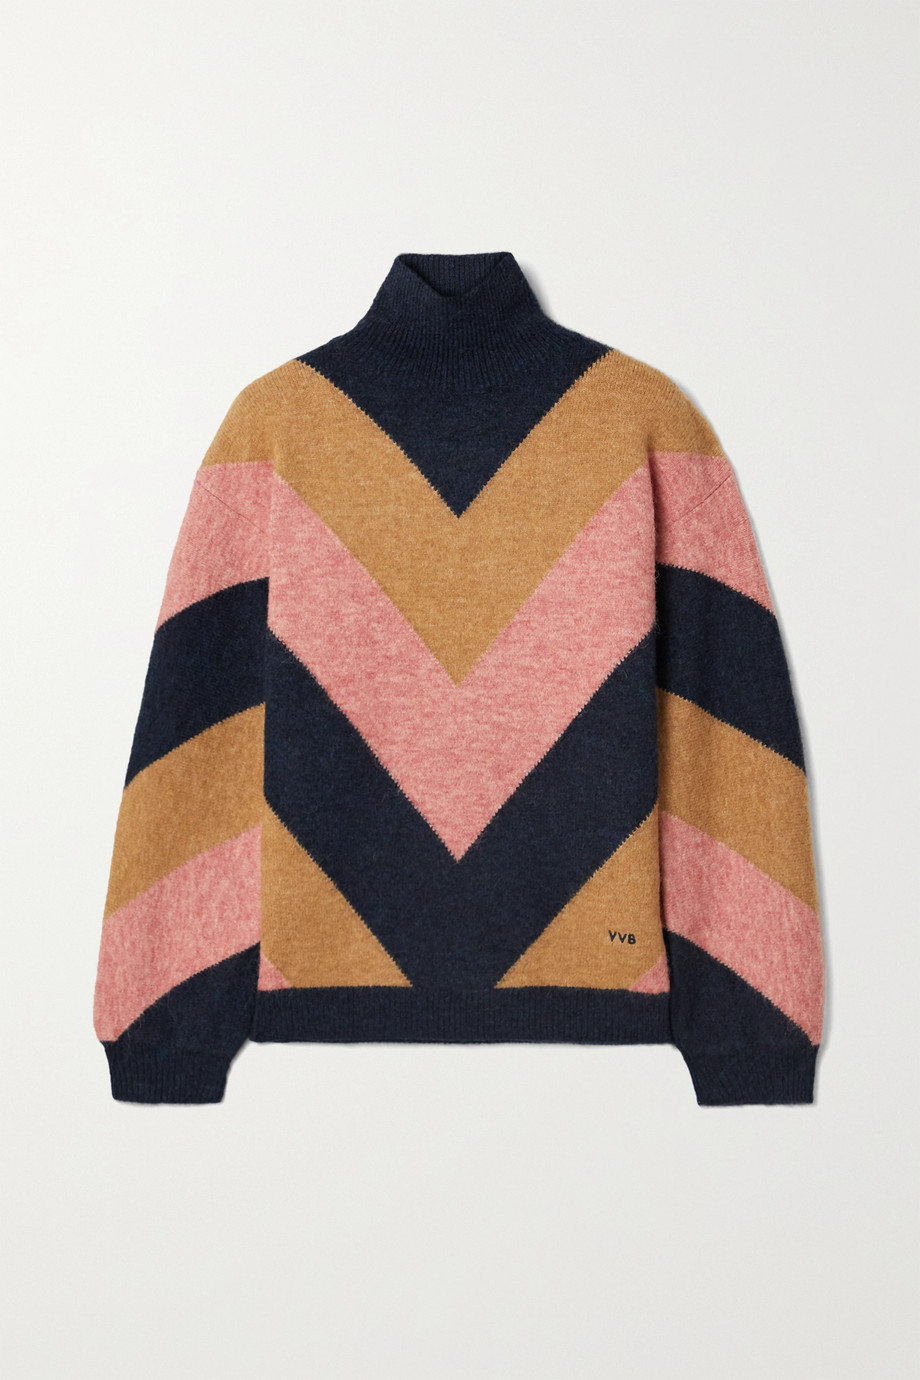 Victoria, Victoria Beckham Oversized color-block jacquard-knit turtleneck sweater